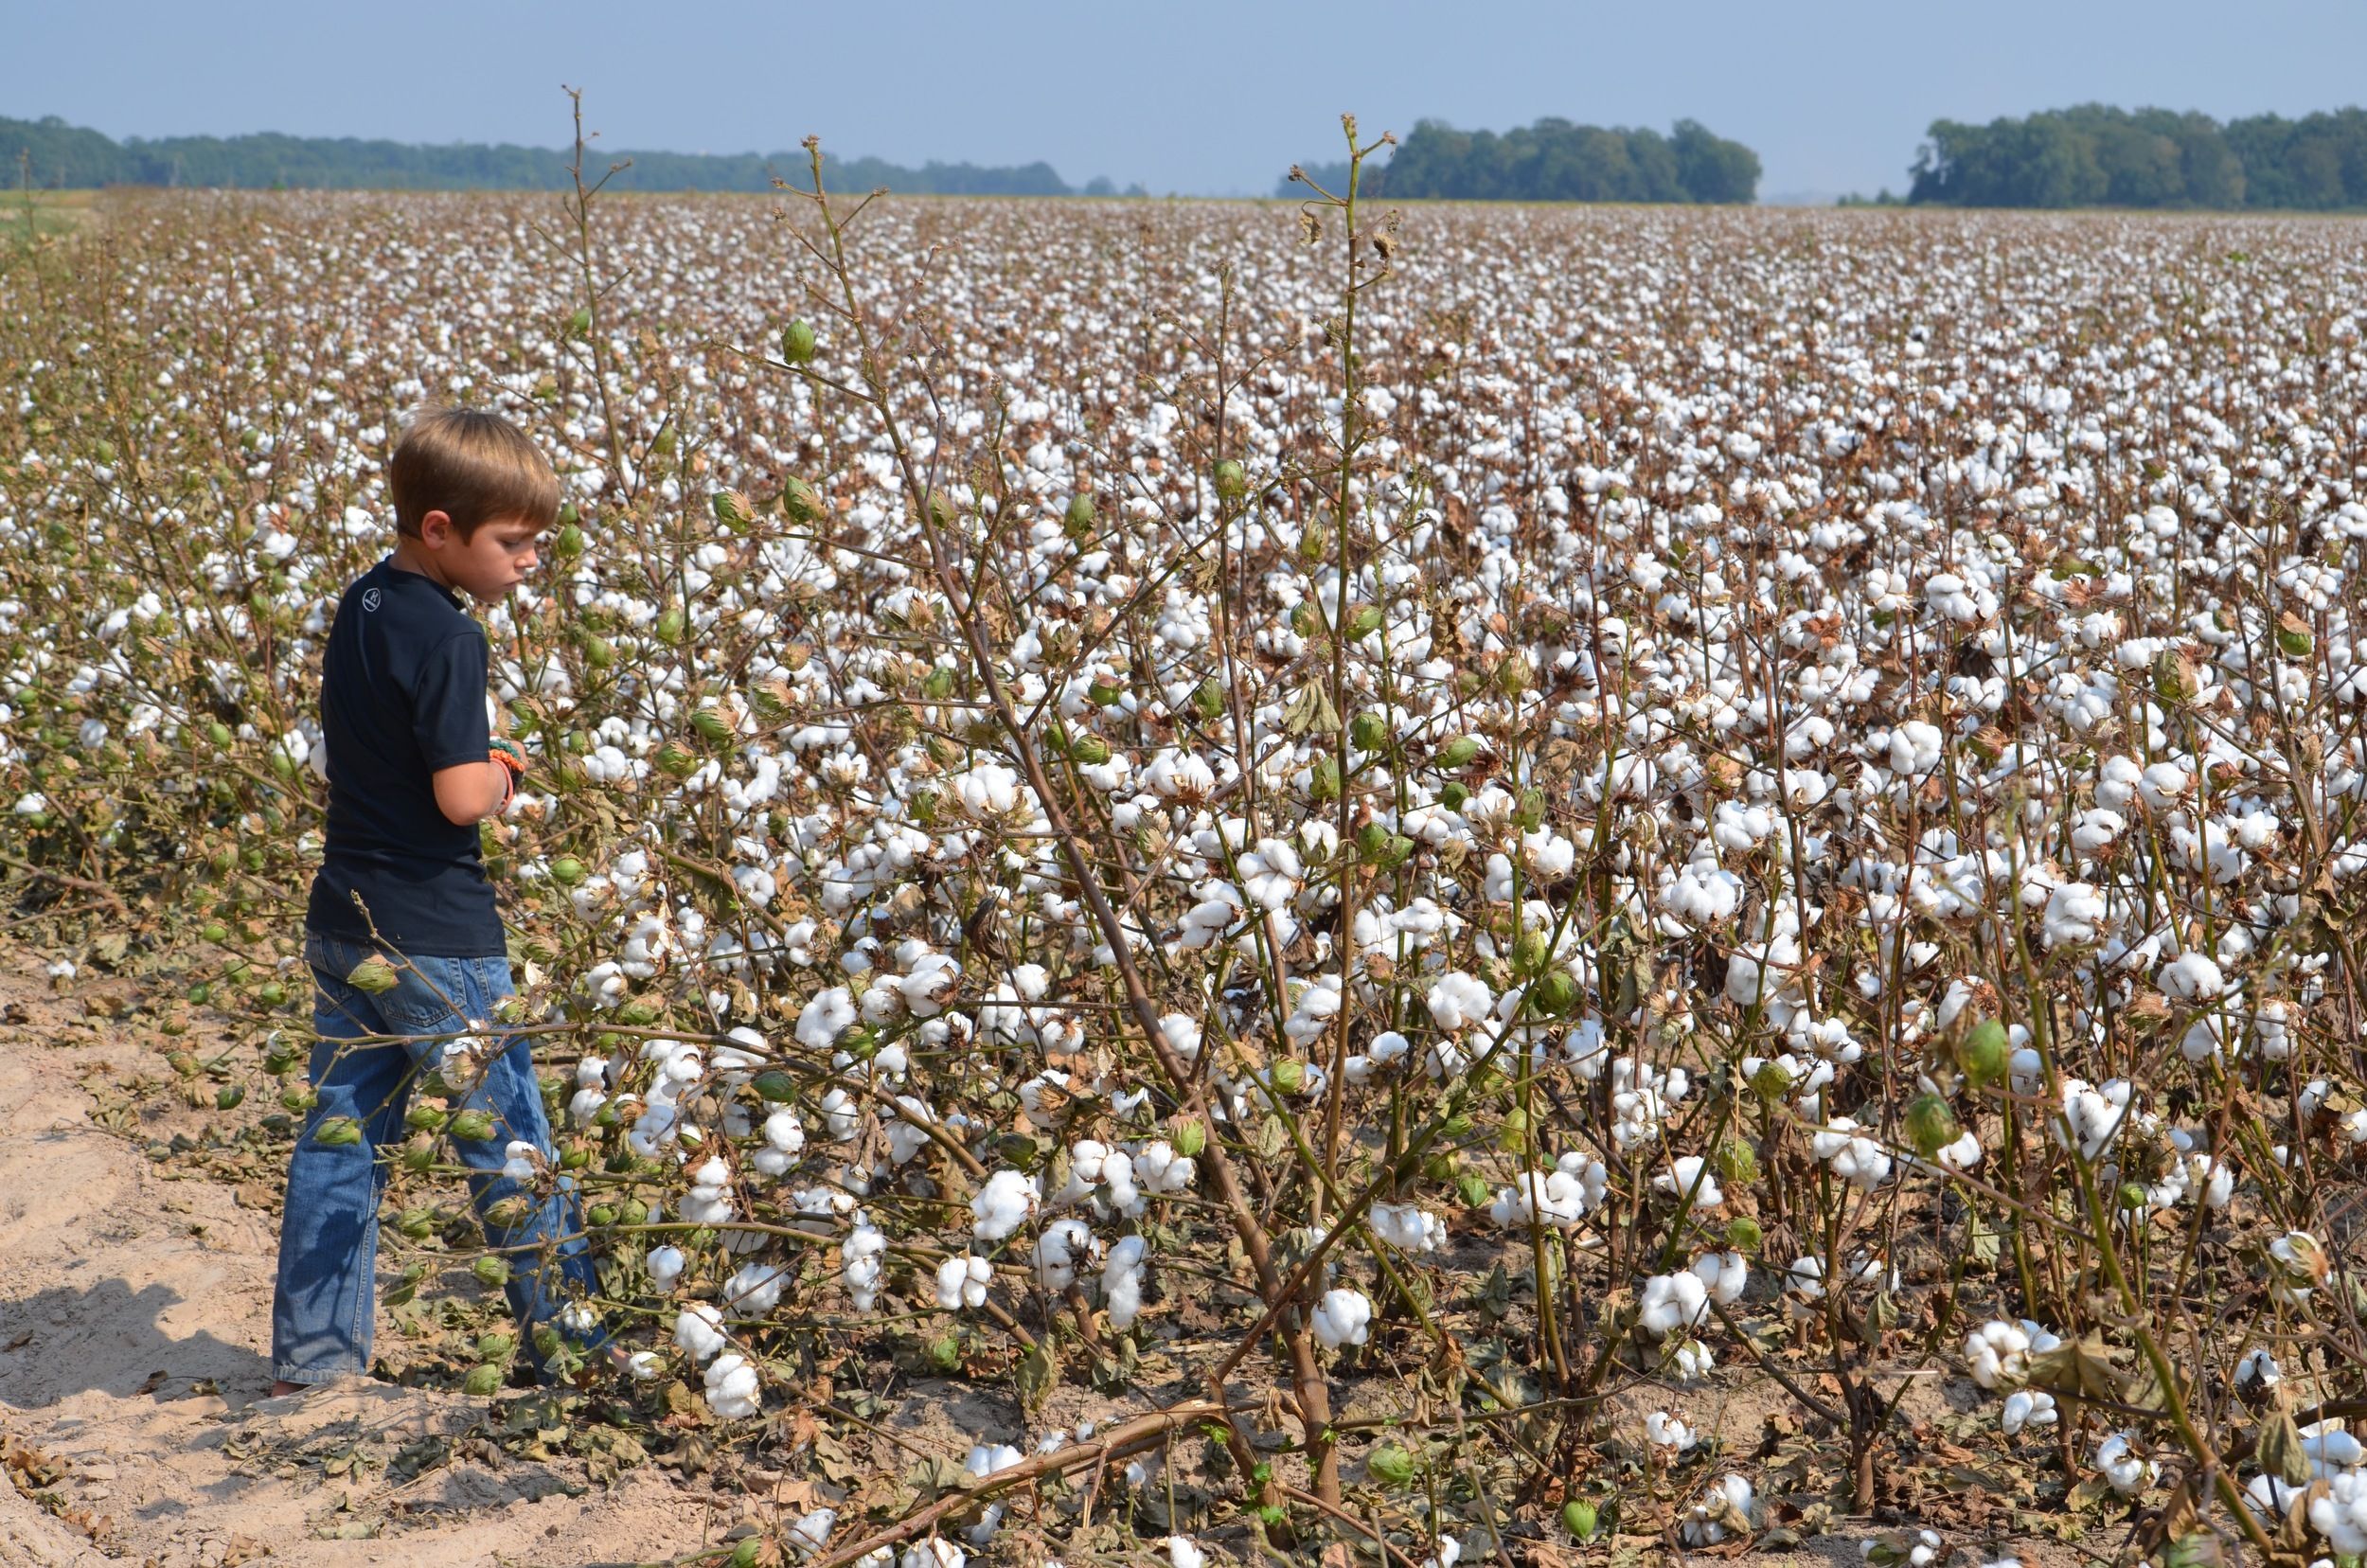 inspecting cotton that's ready to harvest